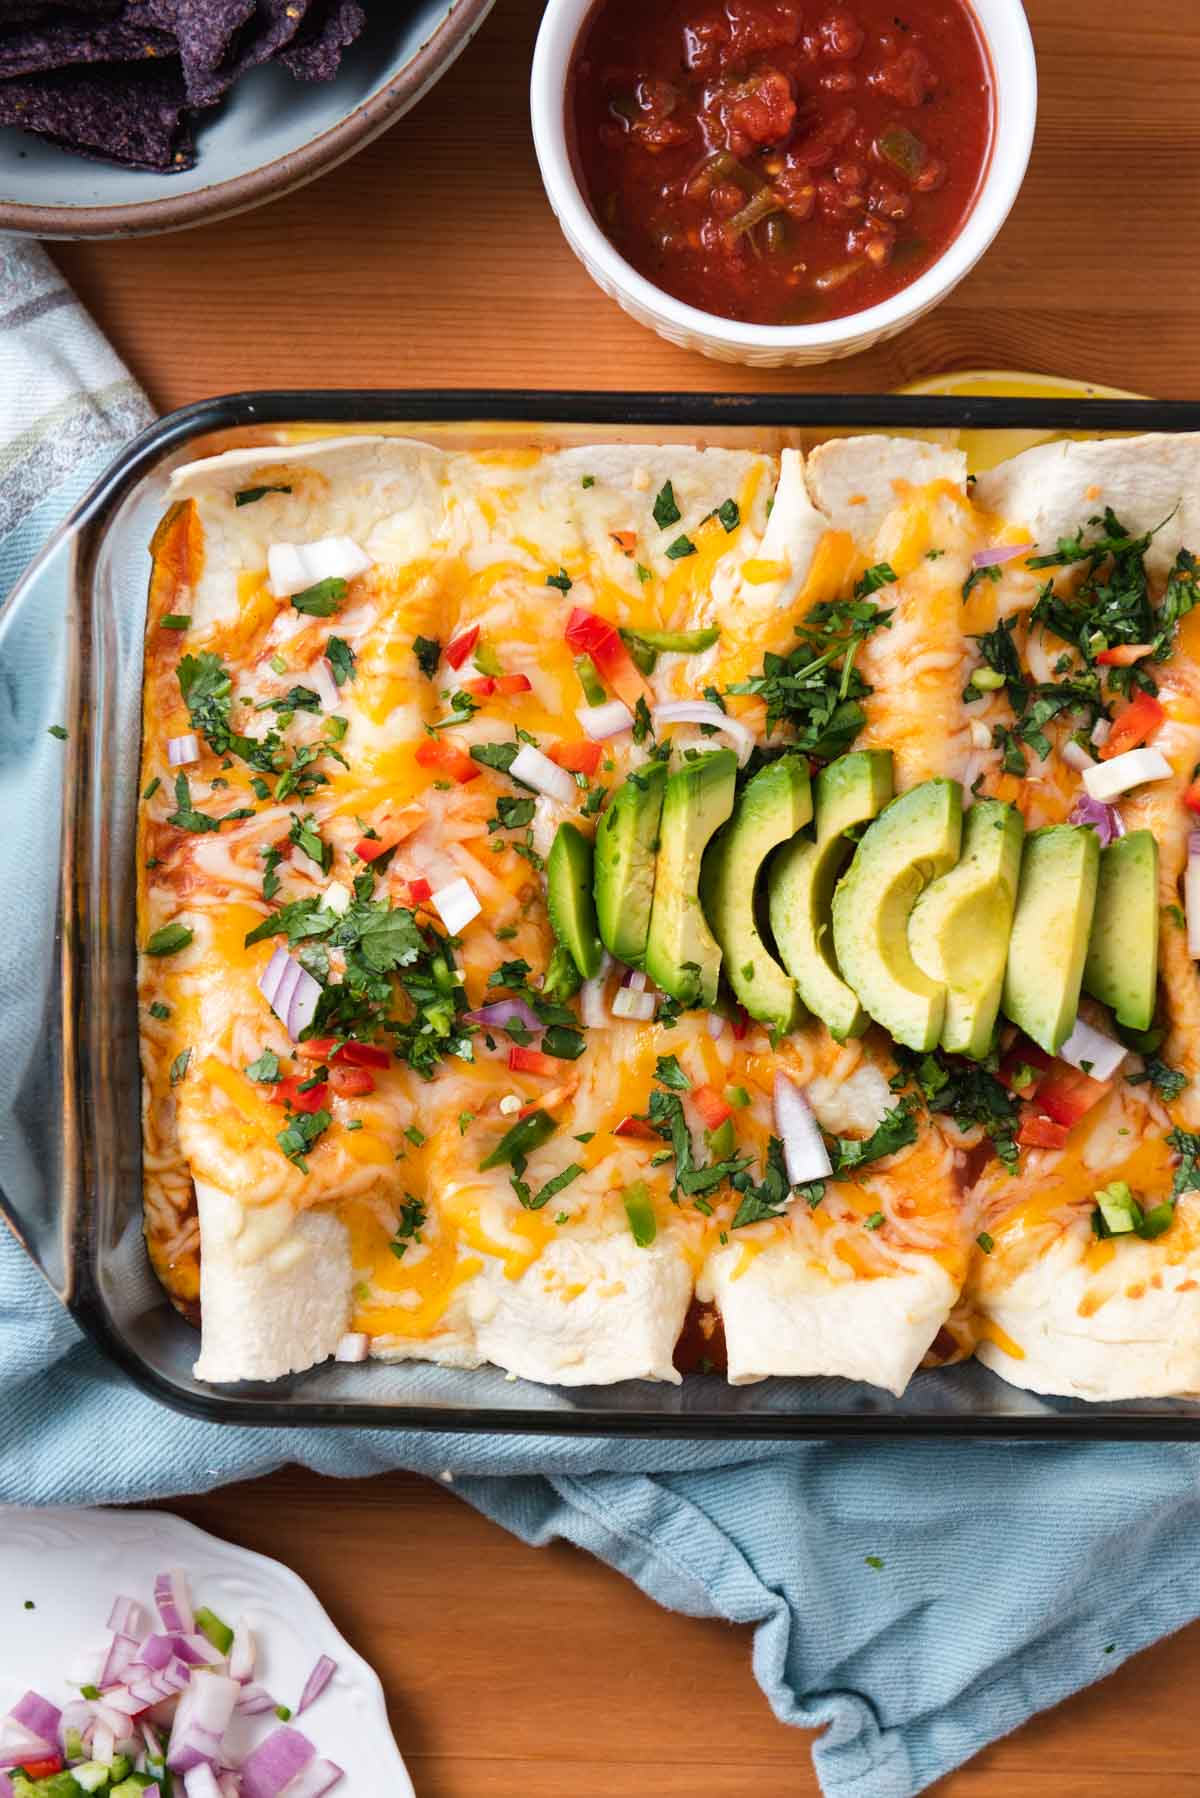 Overhead view of enchiladas topped with sliced avocado and cilantro